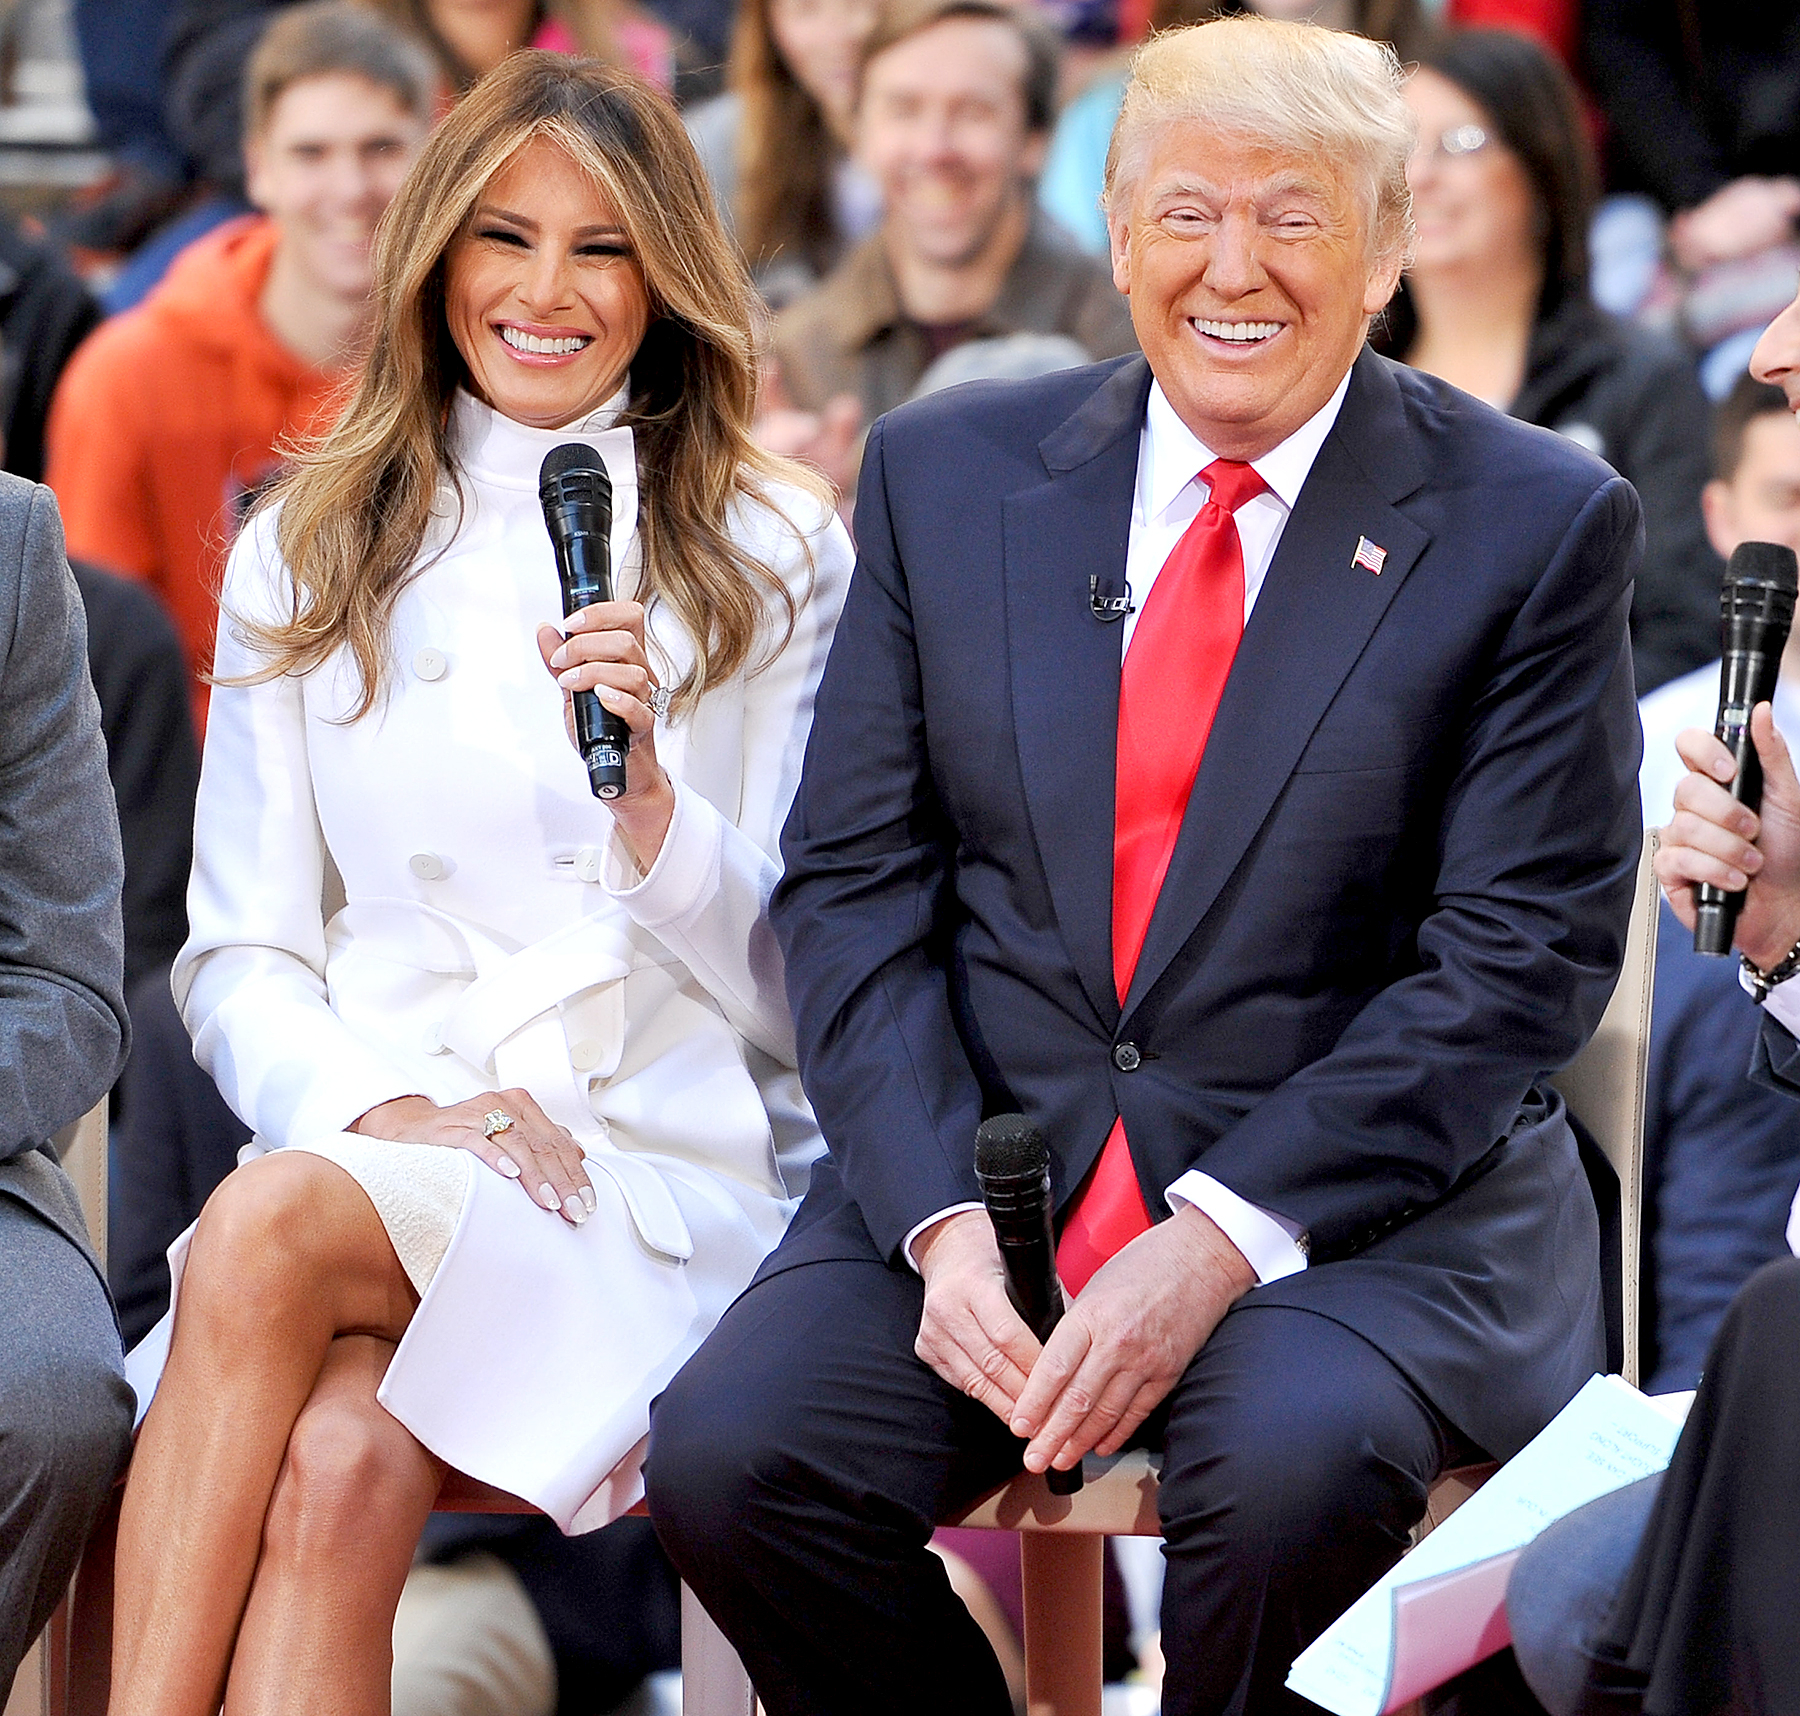 Donald Trump and wife Melania Trump attend NBC's Today Trump Town Hall at Rockefeller Plaza on April 21, 2016 in New York City.